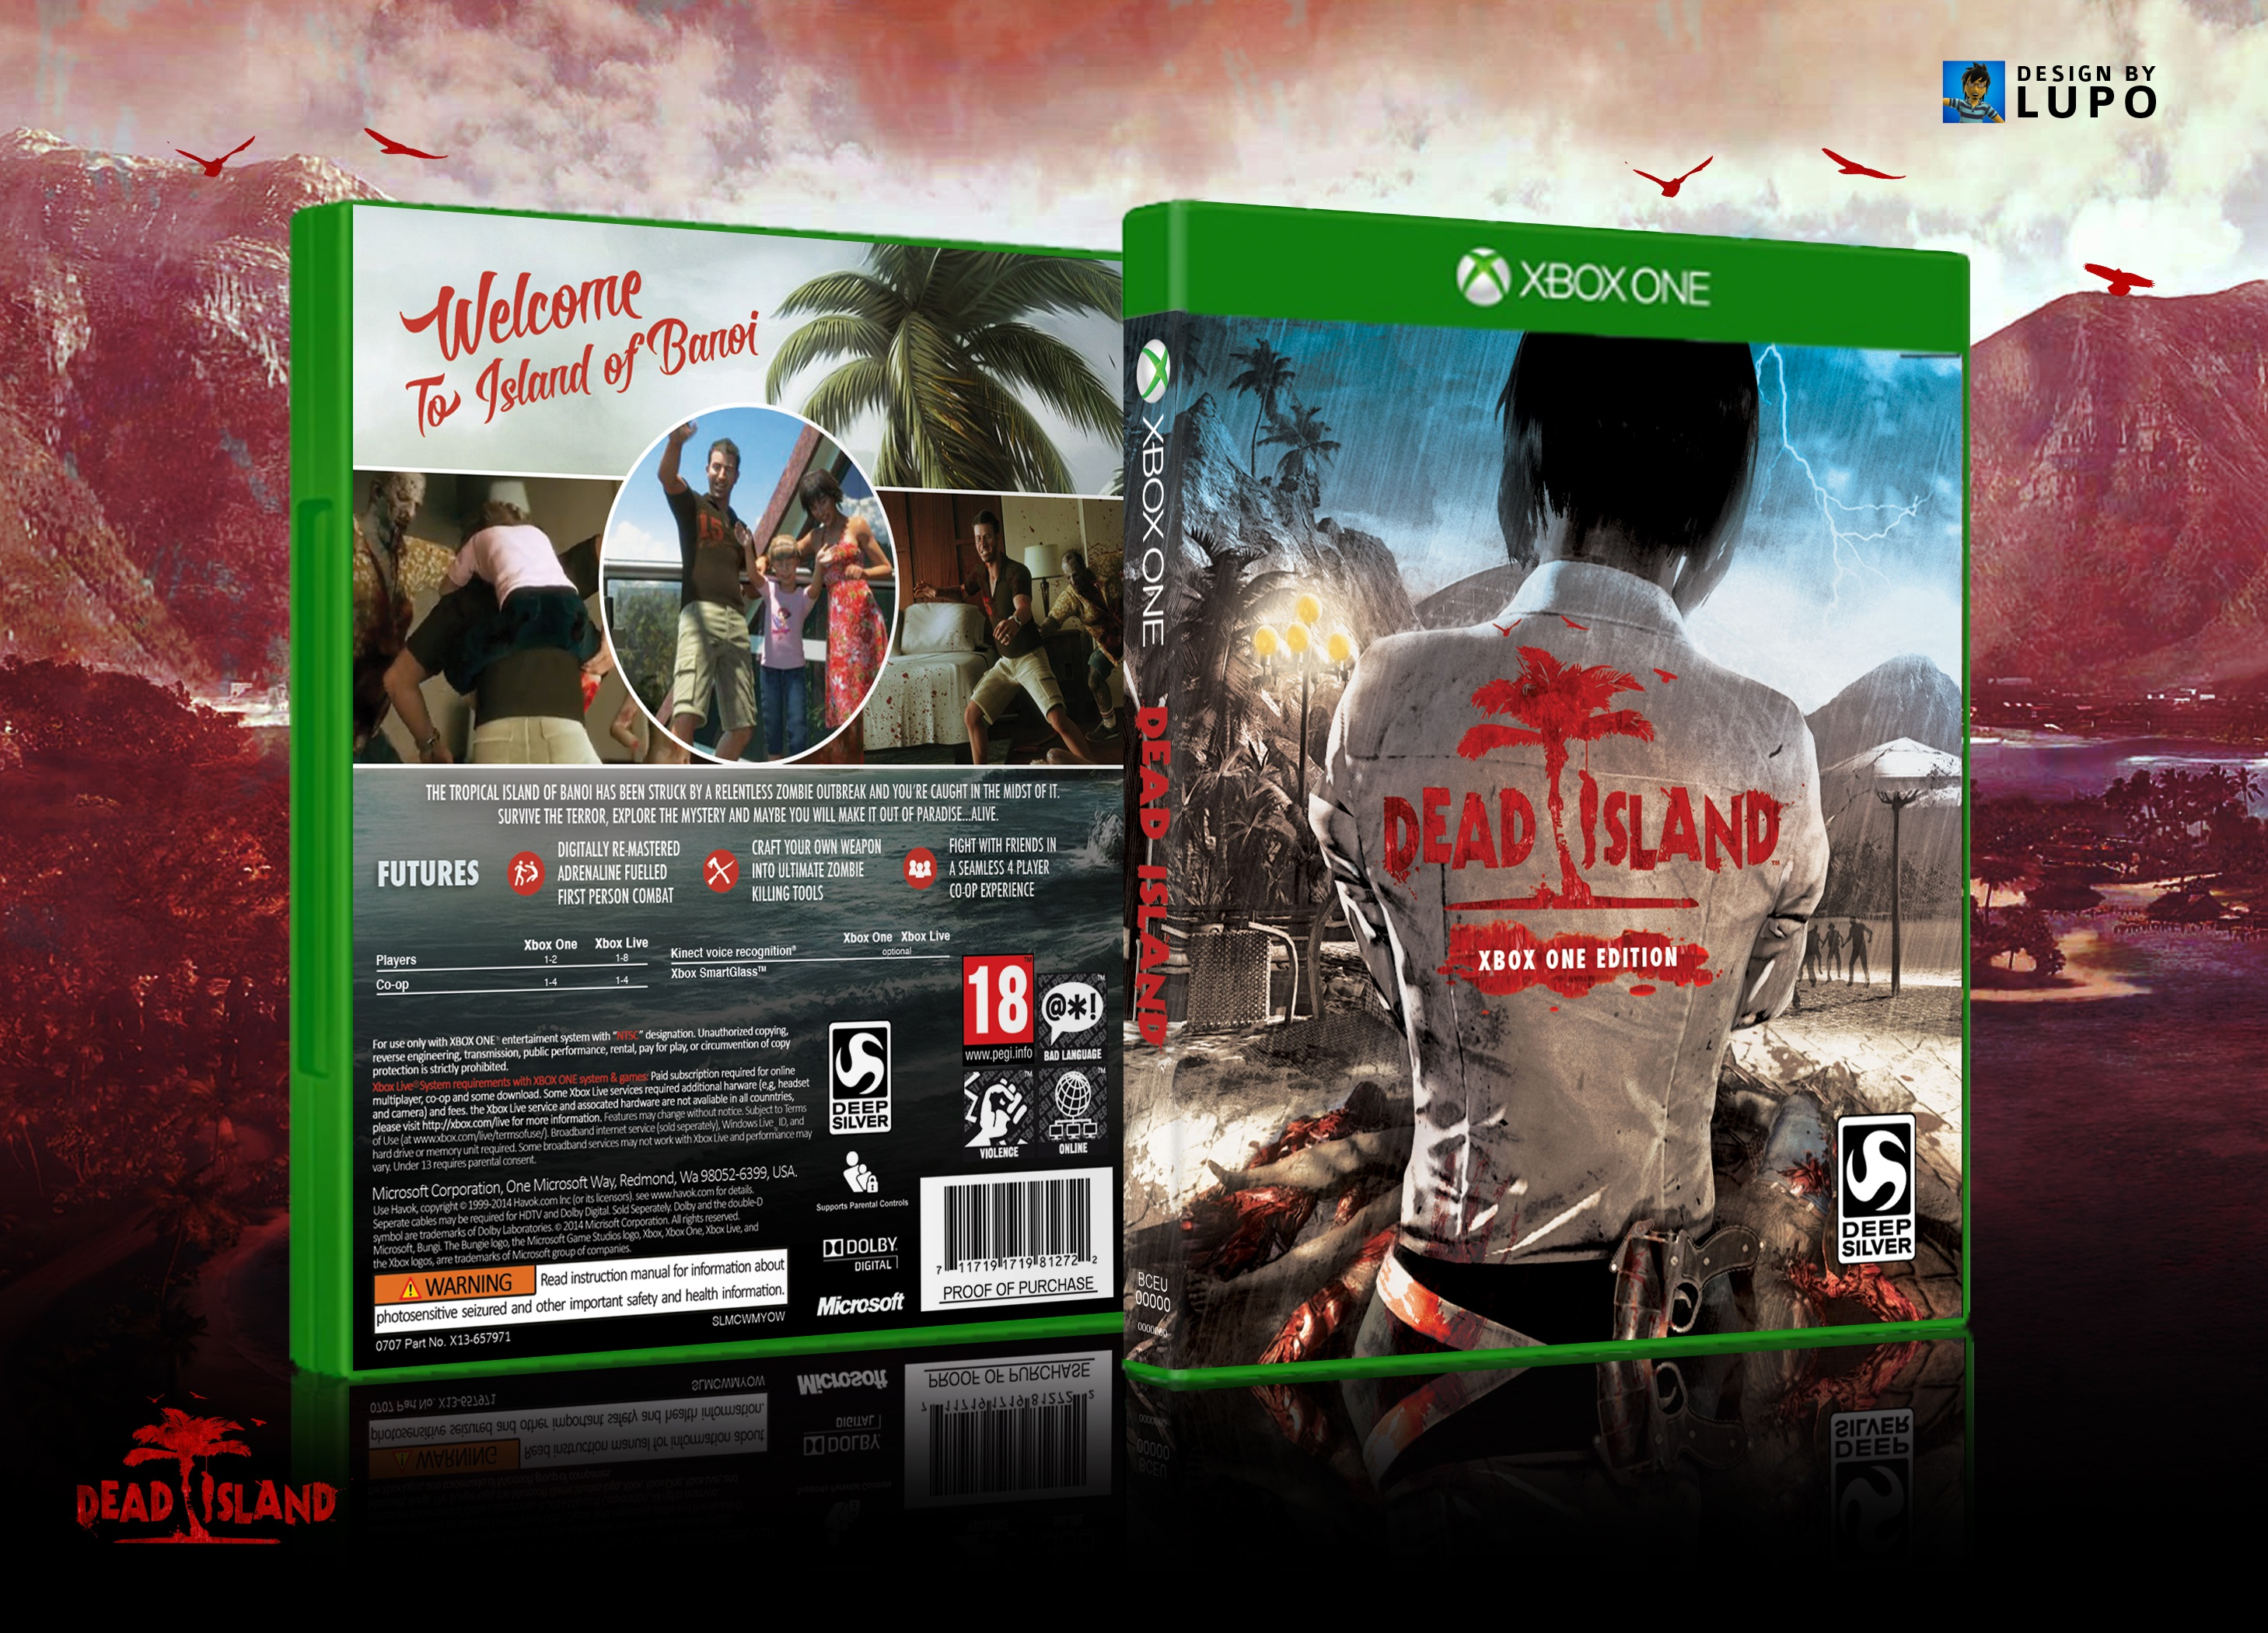 Dead Island Xbox One Edition Xbox One Box Art Cover By Lupo